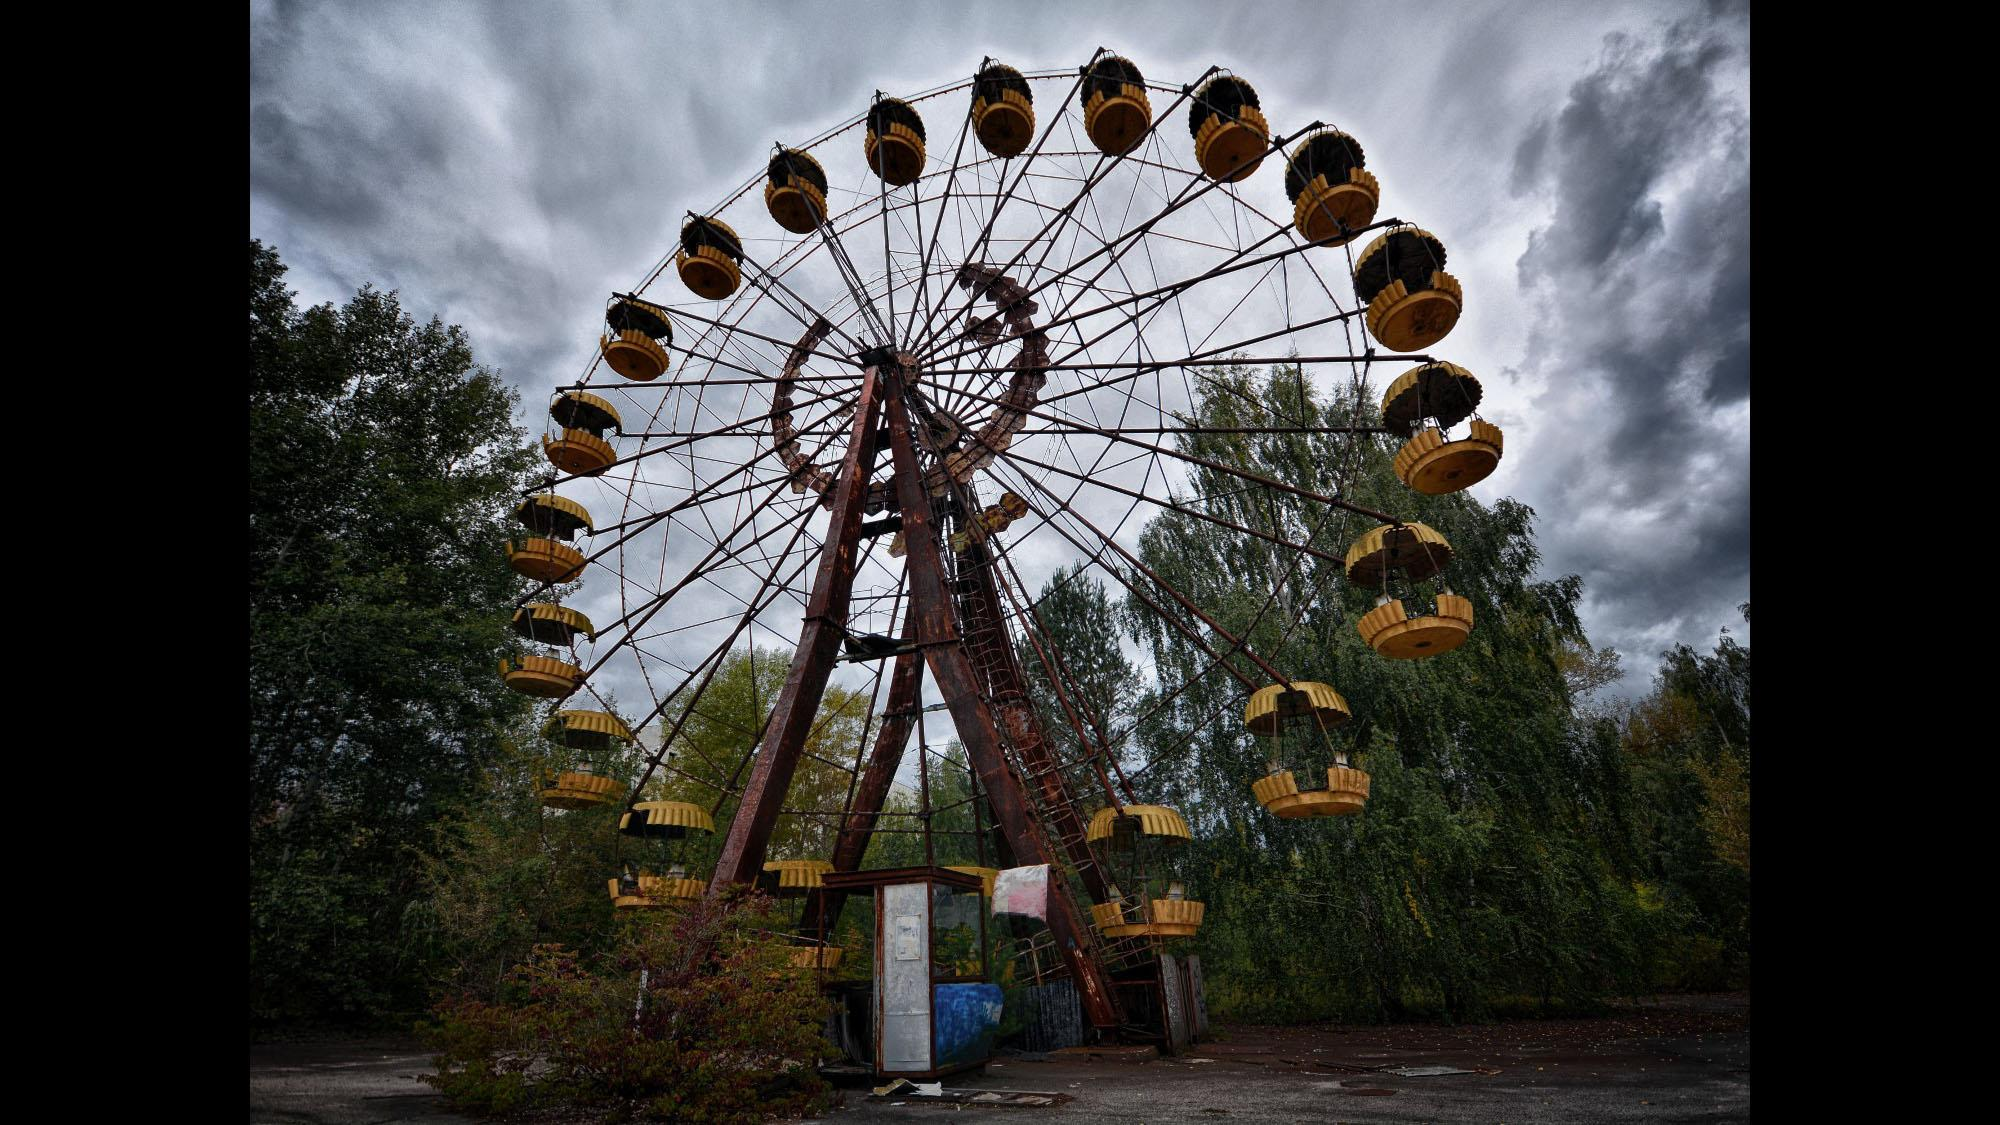 Olejniczak's photographic trips could take him from Saskatchewan to Chernobyl and the ghost town of Pripyat outside the famous nuclear power plant near the Russia-Ukraine border.  (Credit: Jerry Olejniczak)